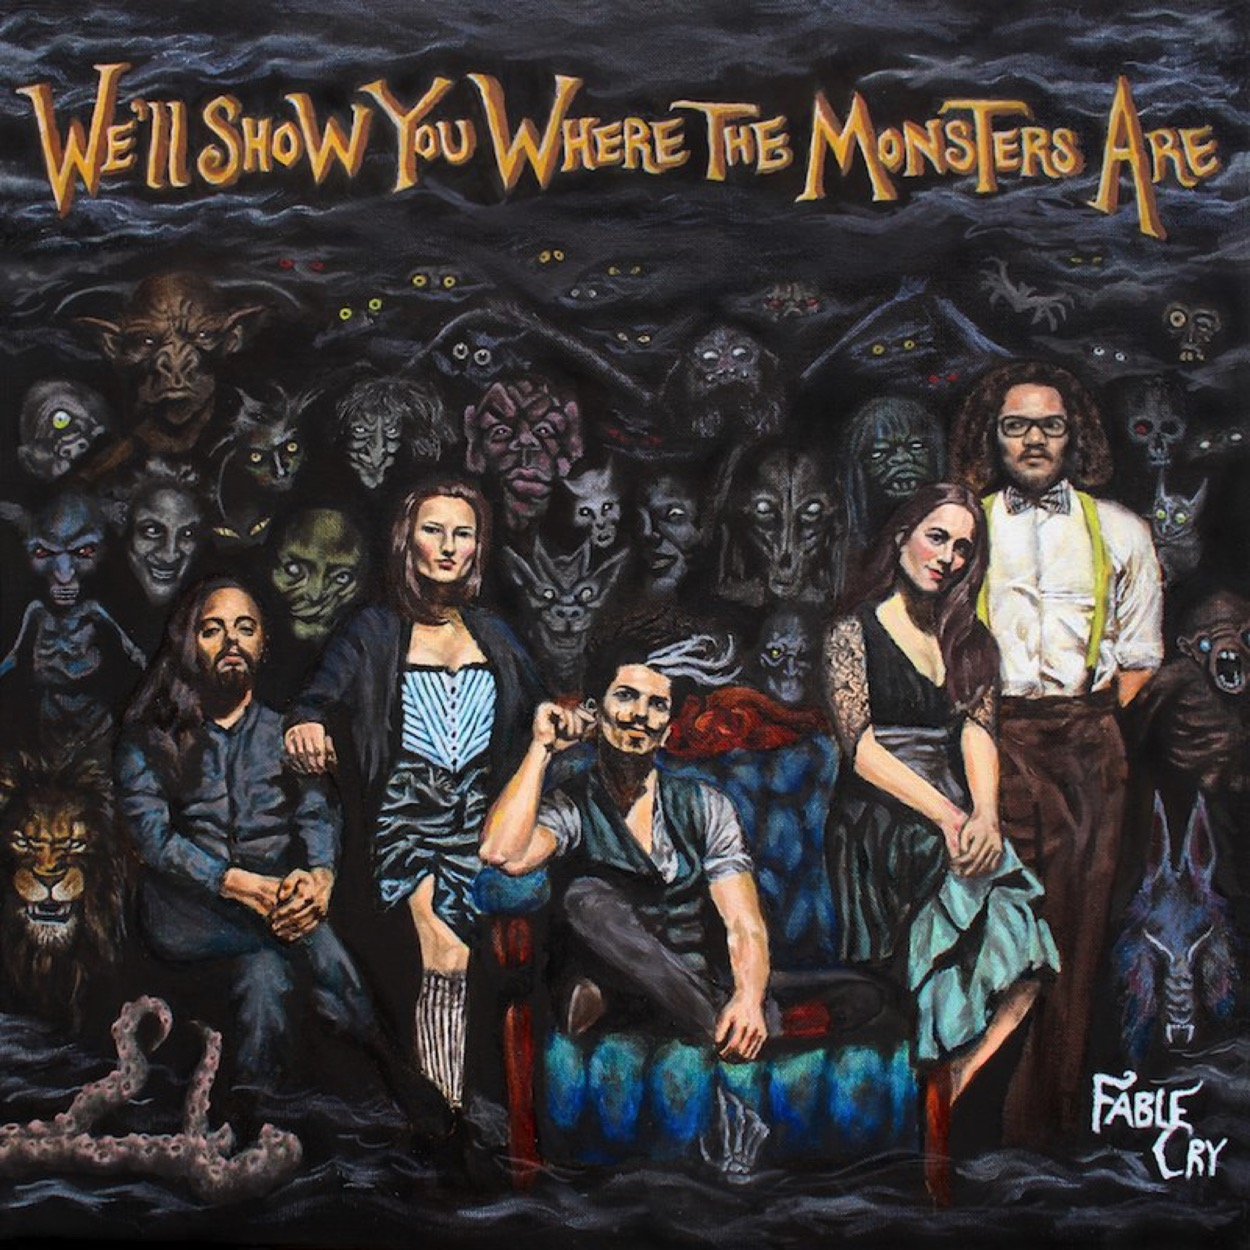 Fable Cry, We'll Show You Where the Monsters Are | Album Review